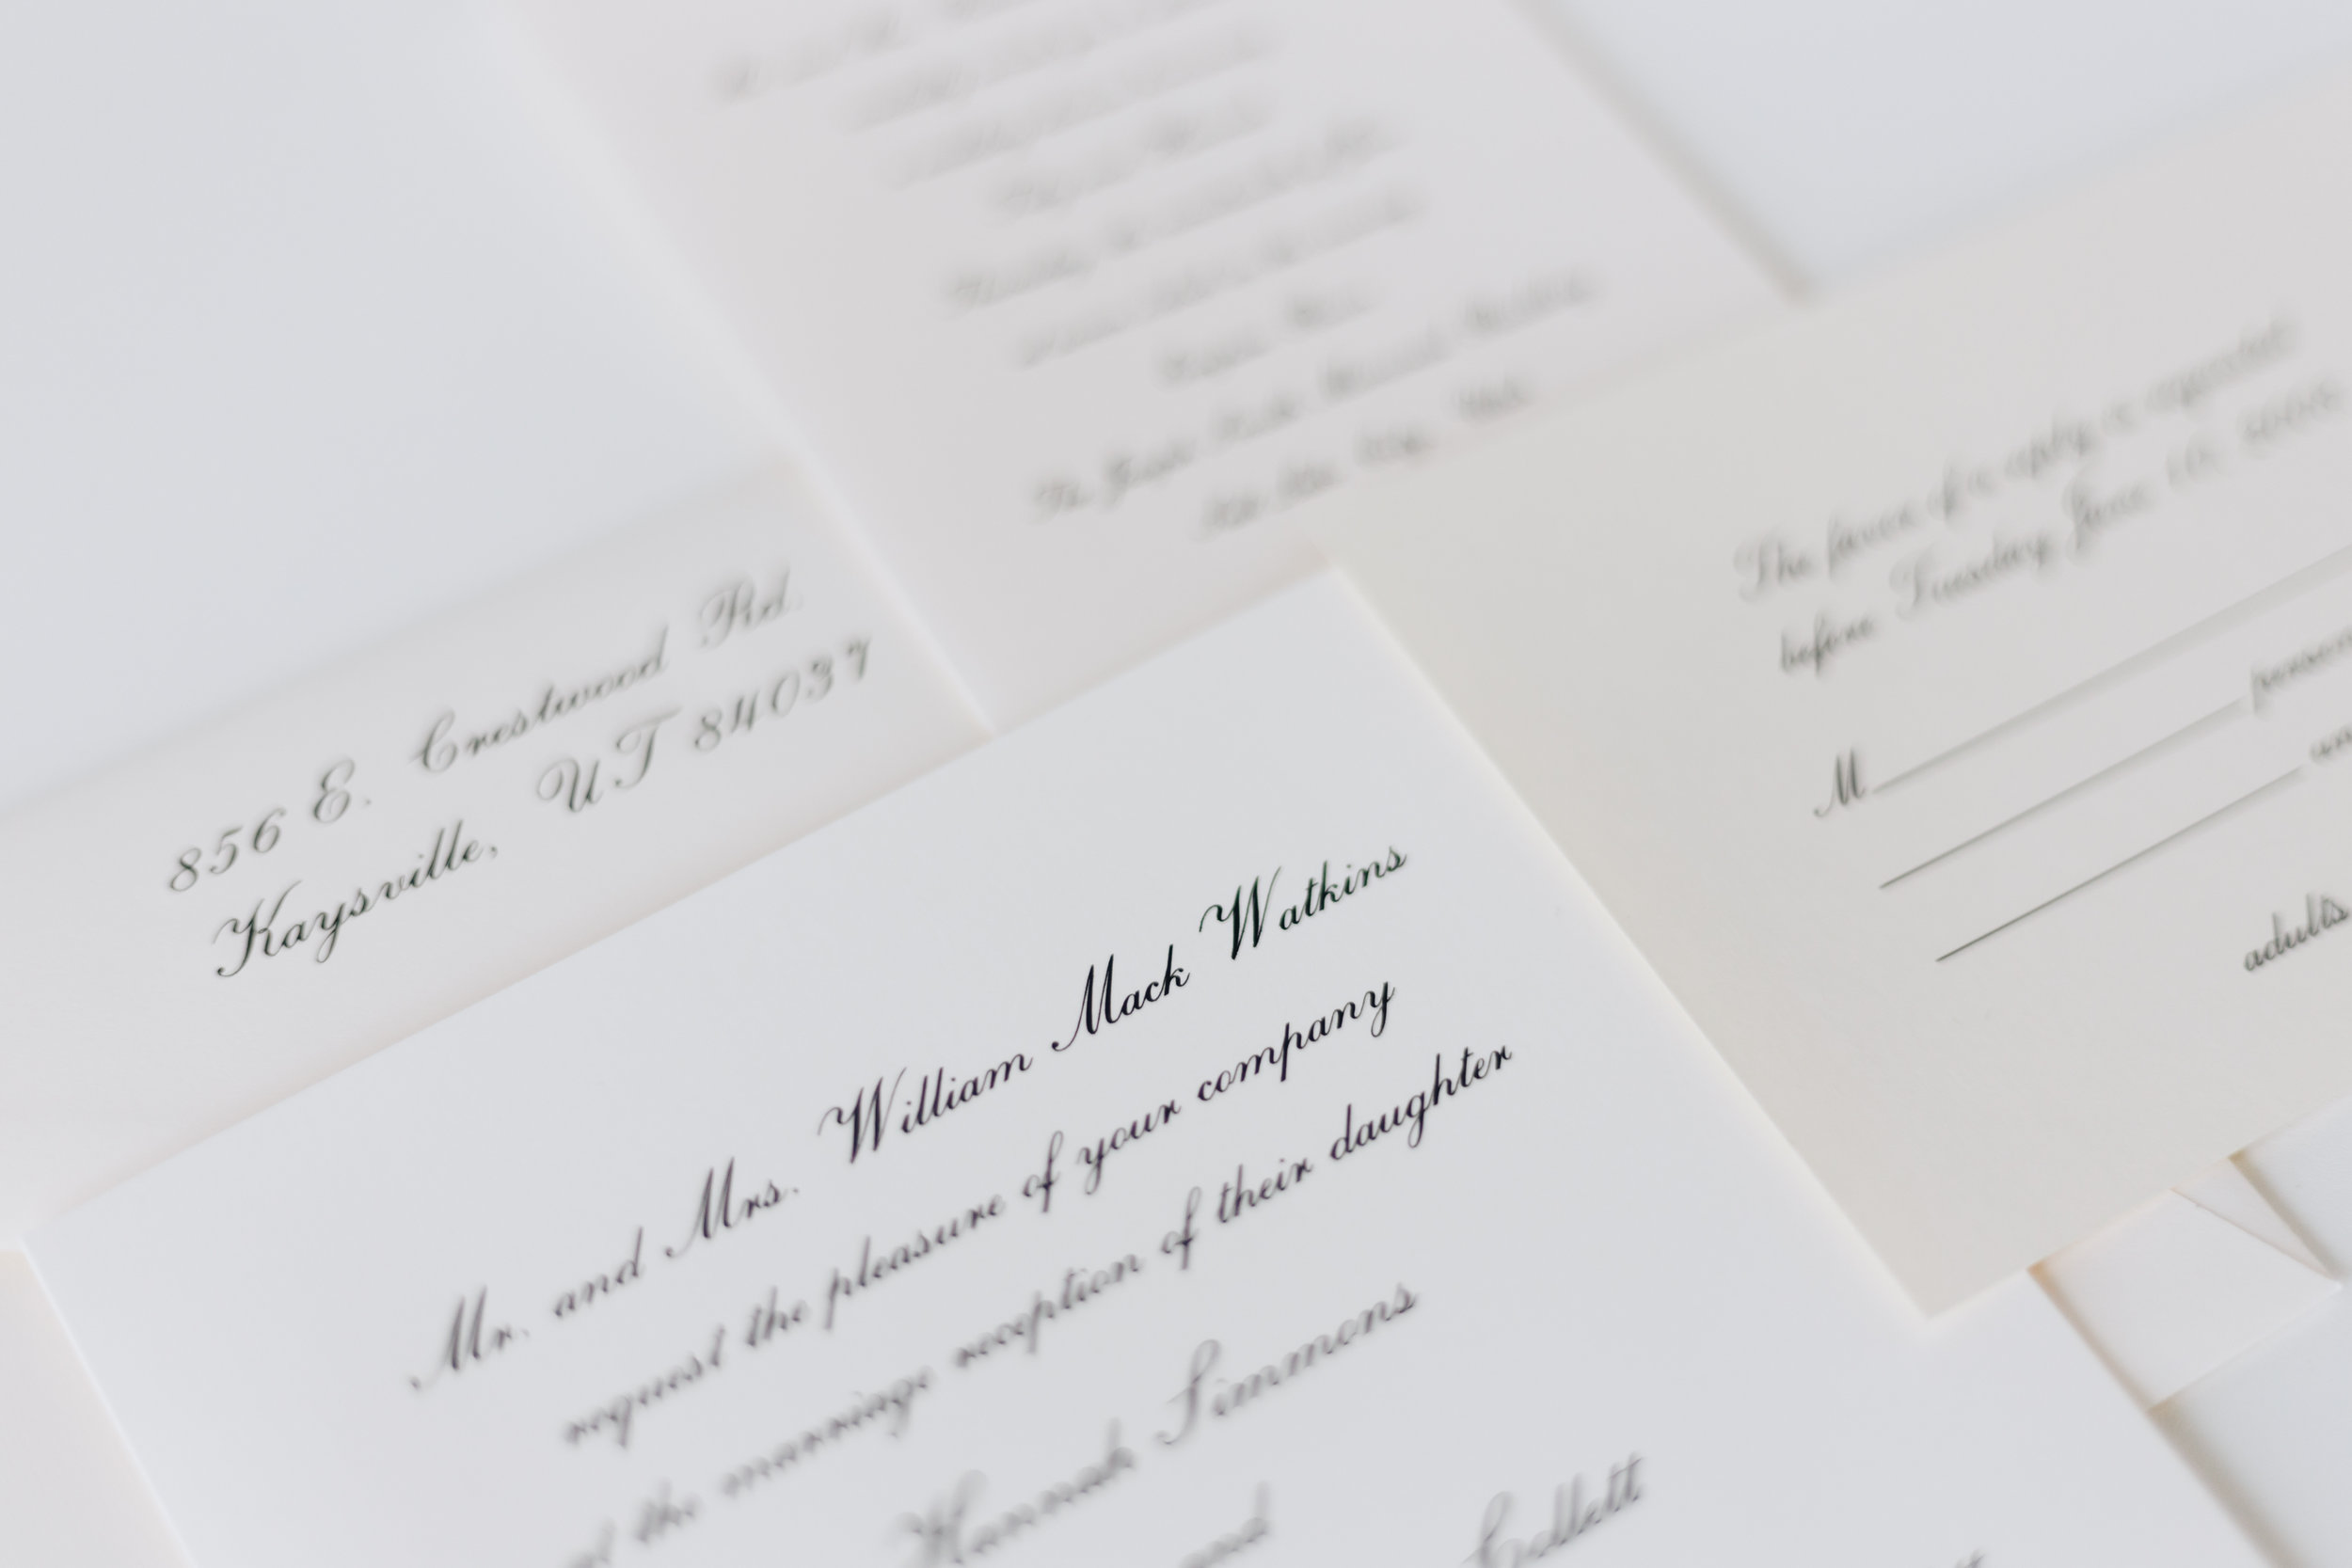 Wedding Invitations Set the Tone for your Wedding. Sending digital copies cannot amount to the elegance of classic stationary.